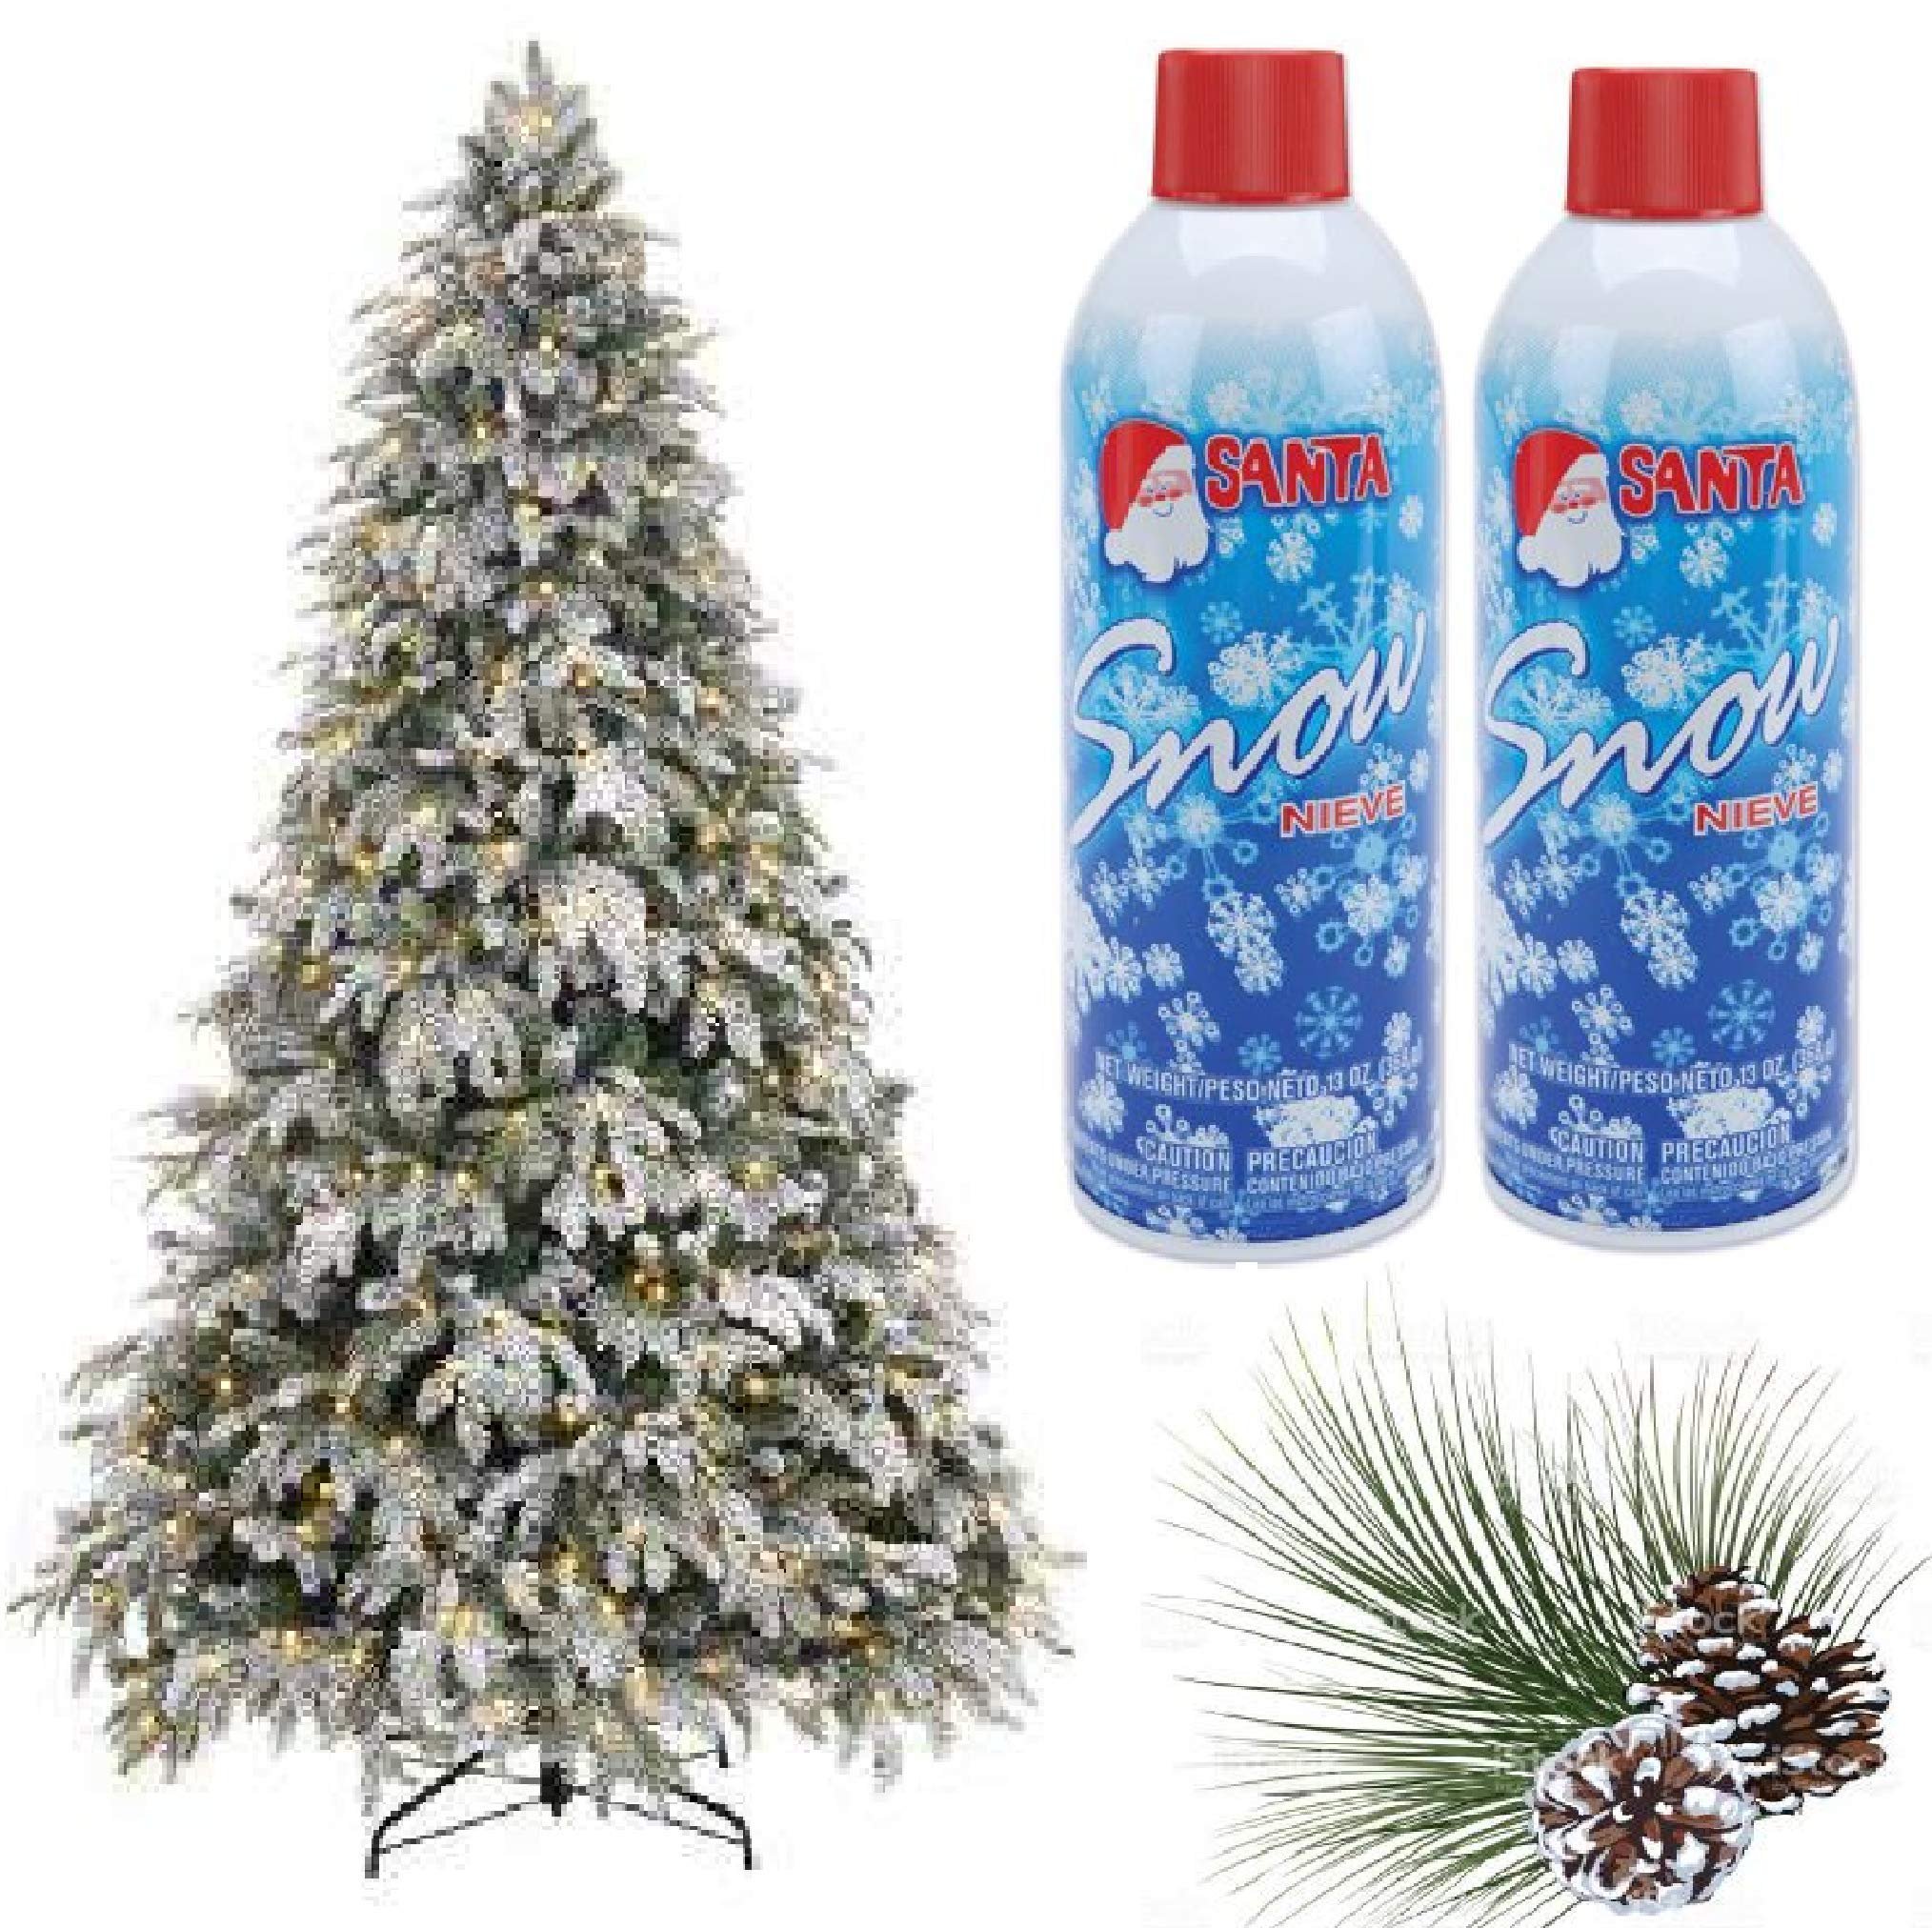 Artificial Christmas Tree Spray: Best Rated In Artificial Snow & Helpful Customer Reviews